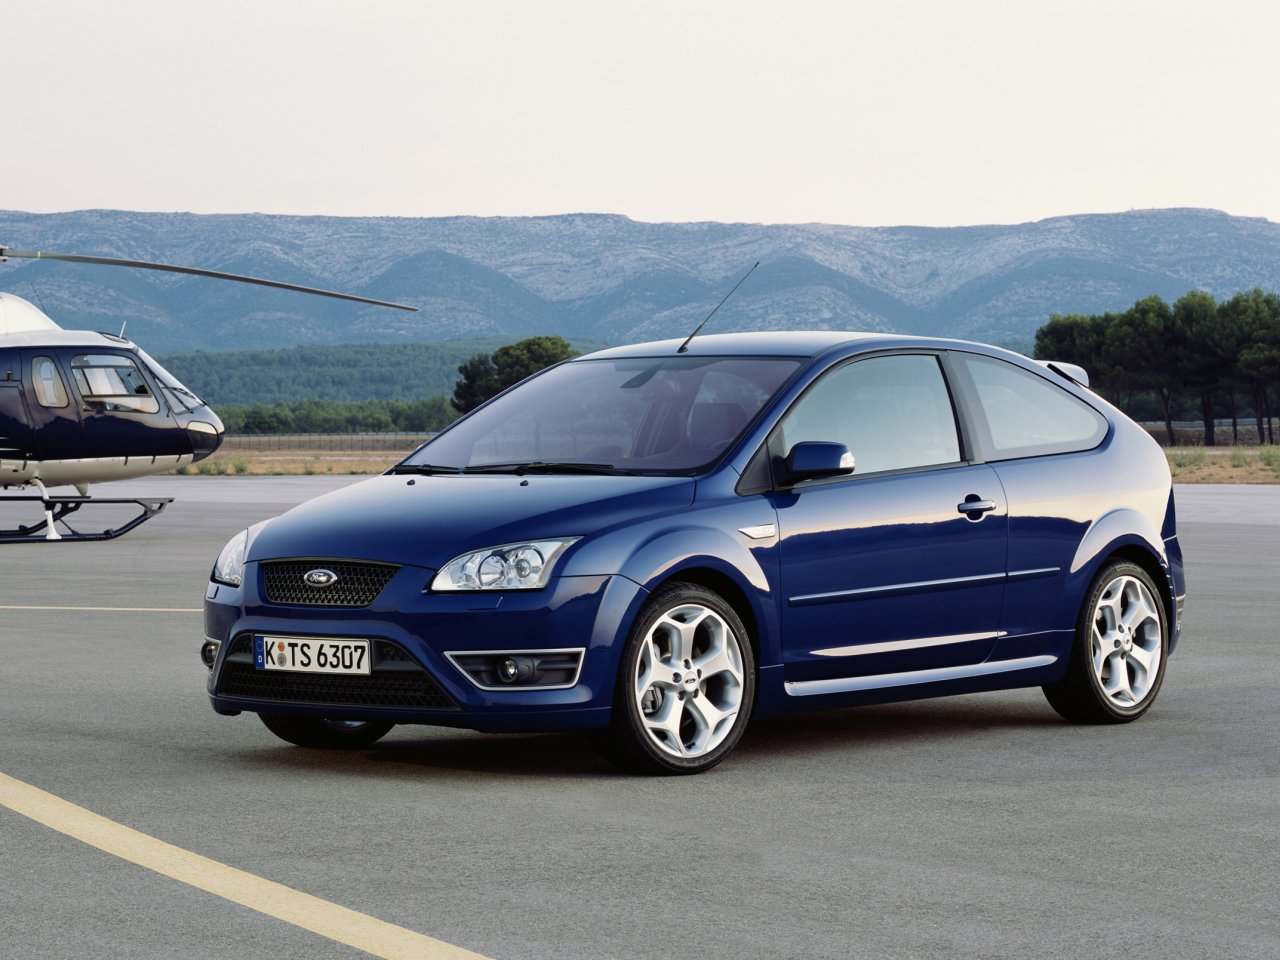 Photoshop of the 08 Focus-ford-focus-st-5.jpg